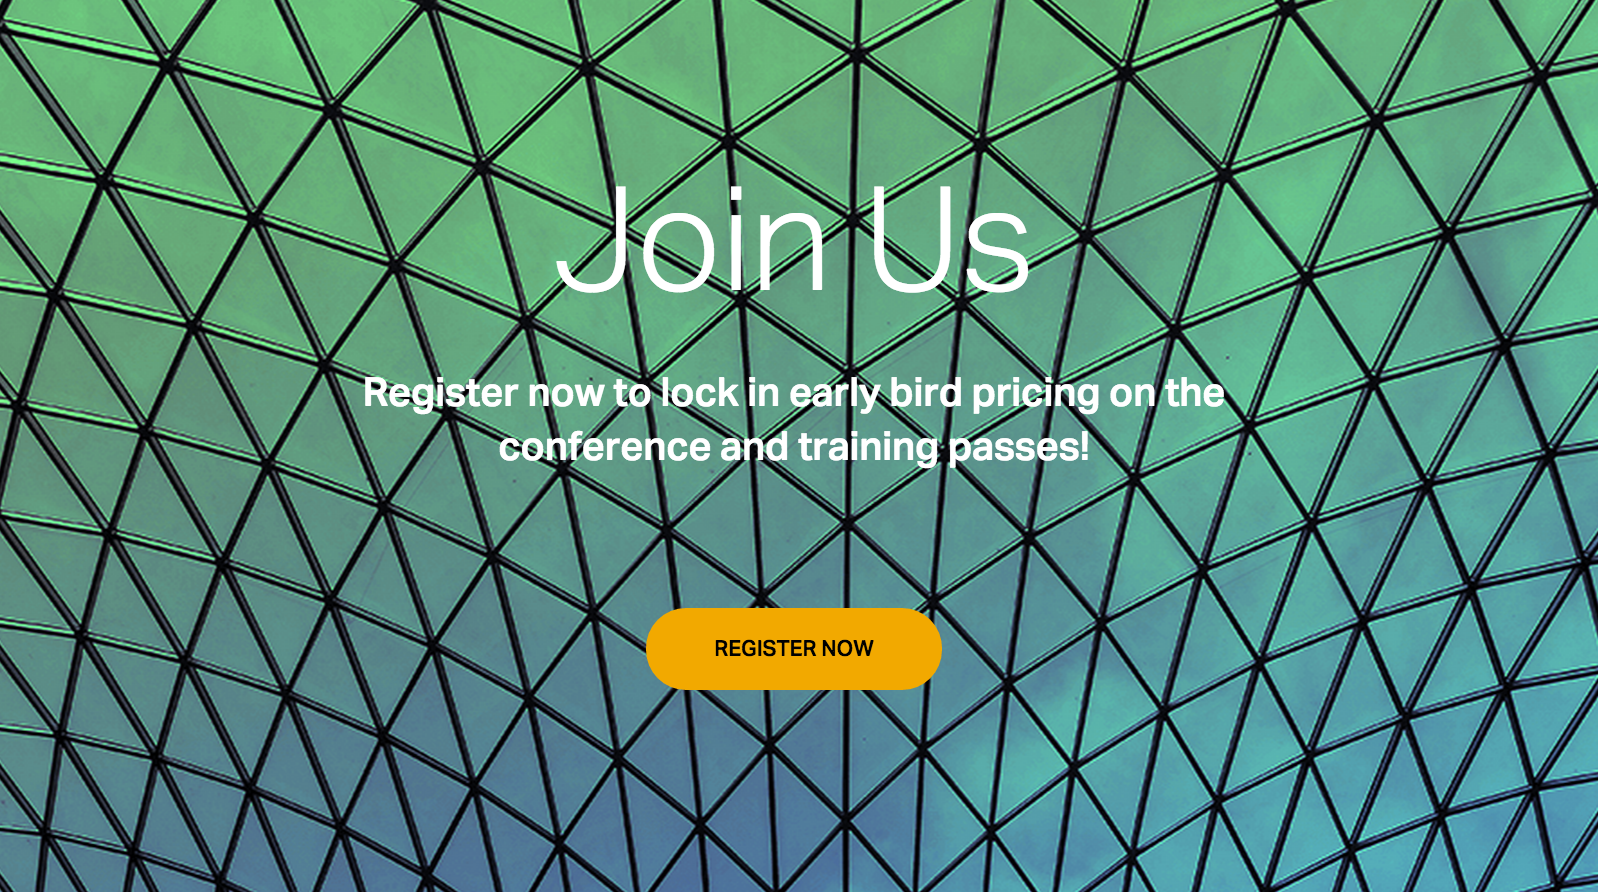 Join us at nginx.conf 2015 to learn about complete application delivery